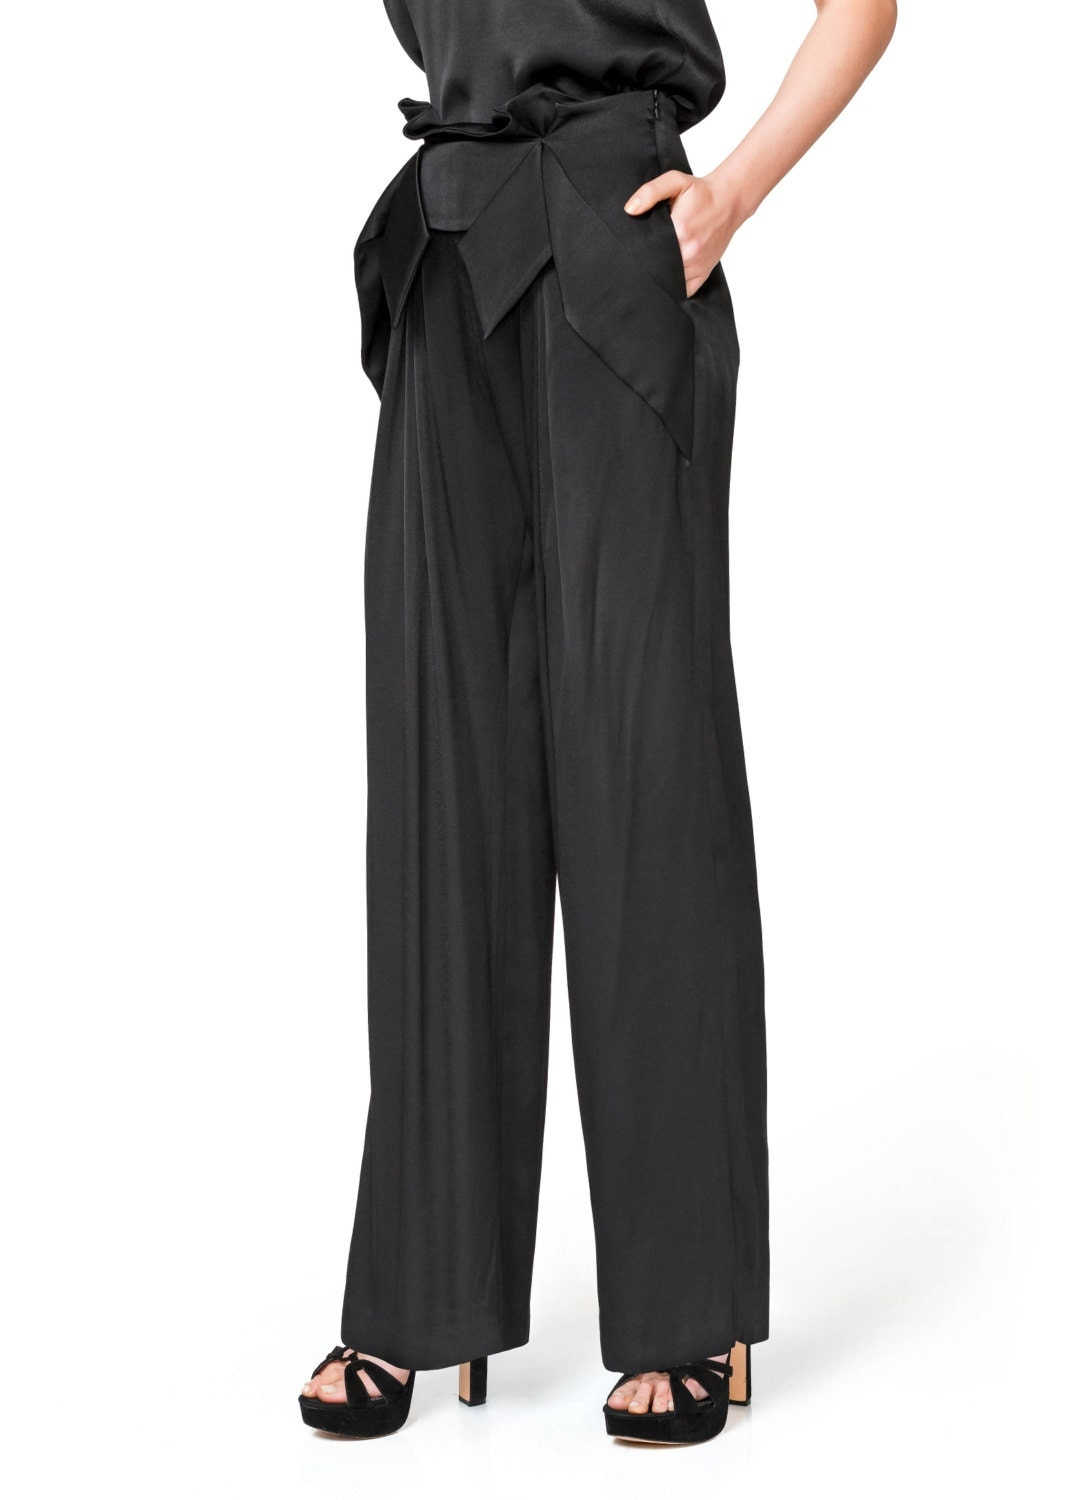 Flattering and hip-skimming, it's no surprise that high waisted pants keep returning to the catwalk. Stay one step ahead of the game with Missguided's super stylish high waisted pants and shop the exclusive range today. Plus Size Black High Waisted Tie Waist Trousers $ Black Wide Leg Check Trousers $